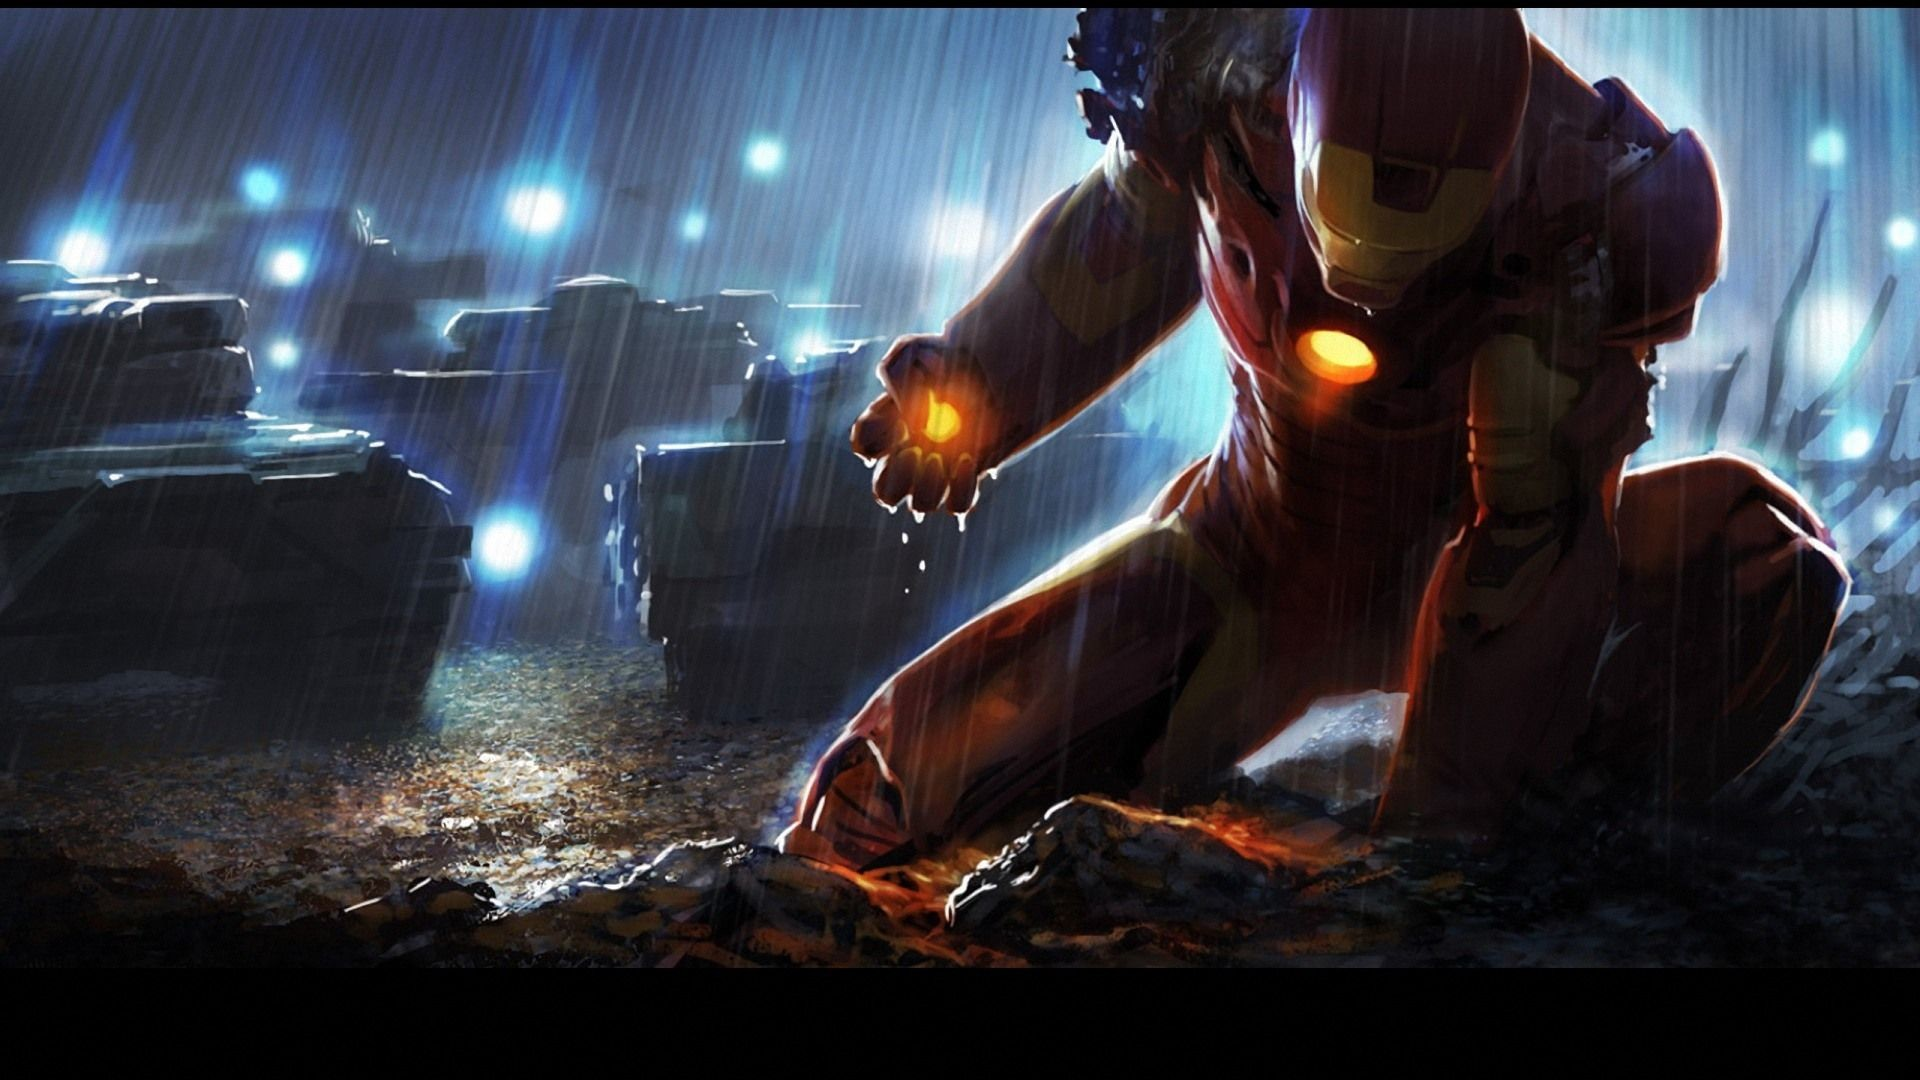 1920x1080 Iron Man Best HTC One wallpapers | HD Wallpapers | Pinterest | Hd wallpaper,  Iron man wallpaper and Man wallpaper